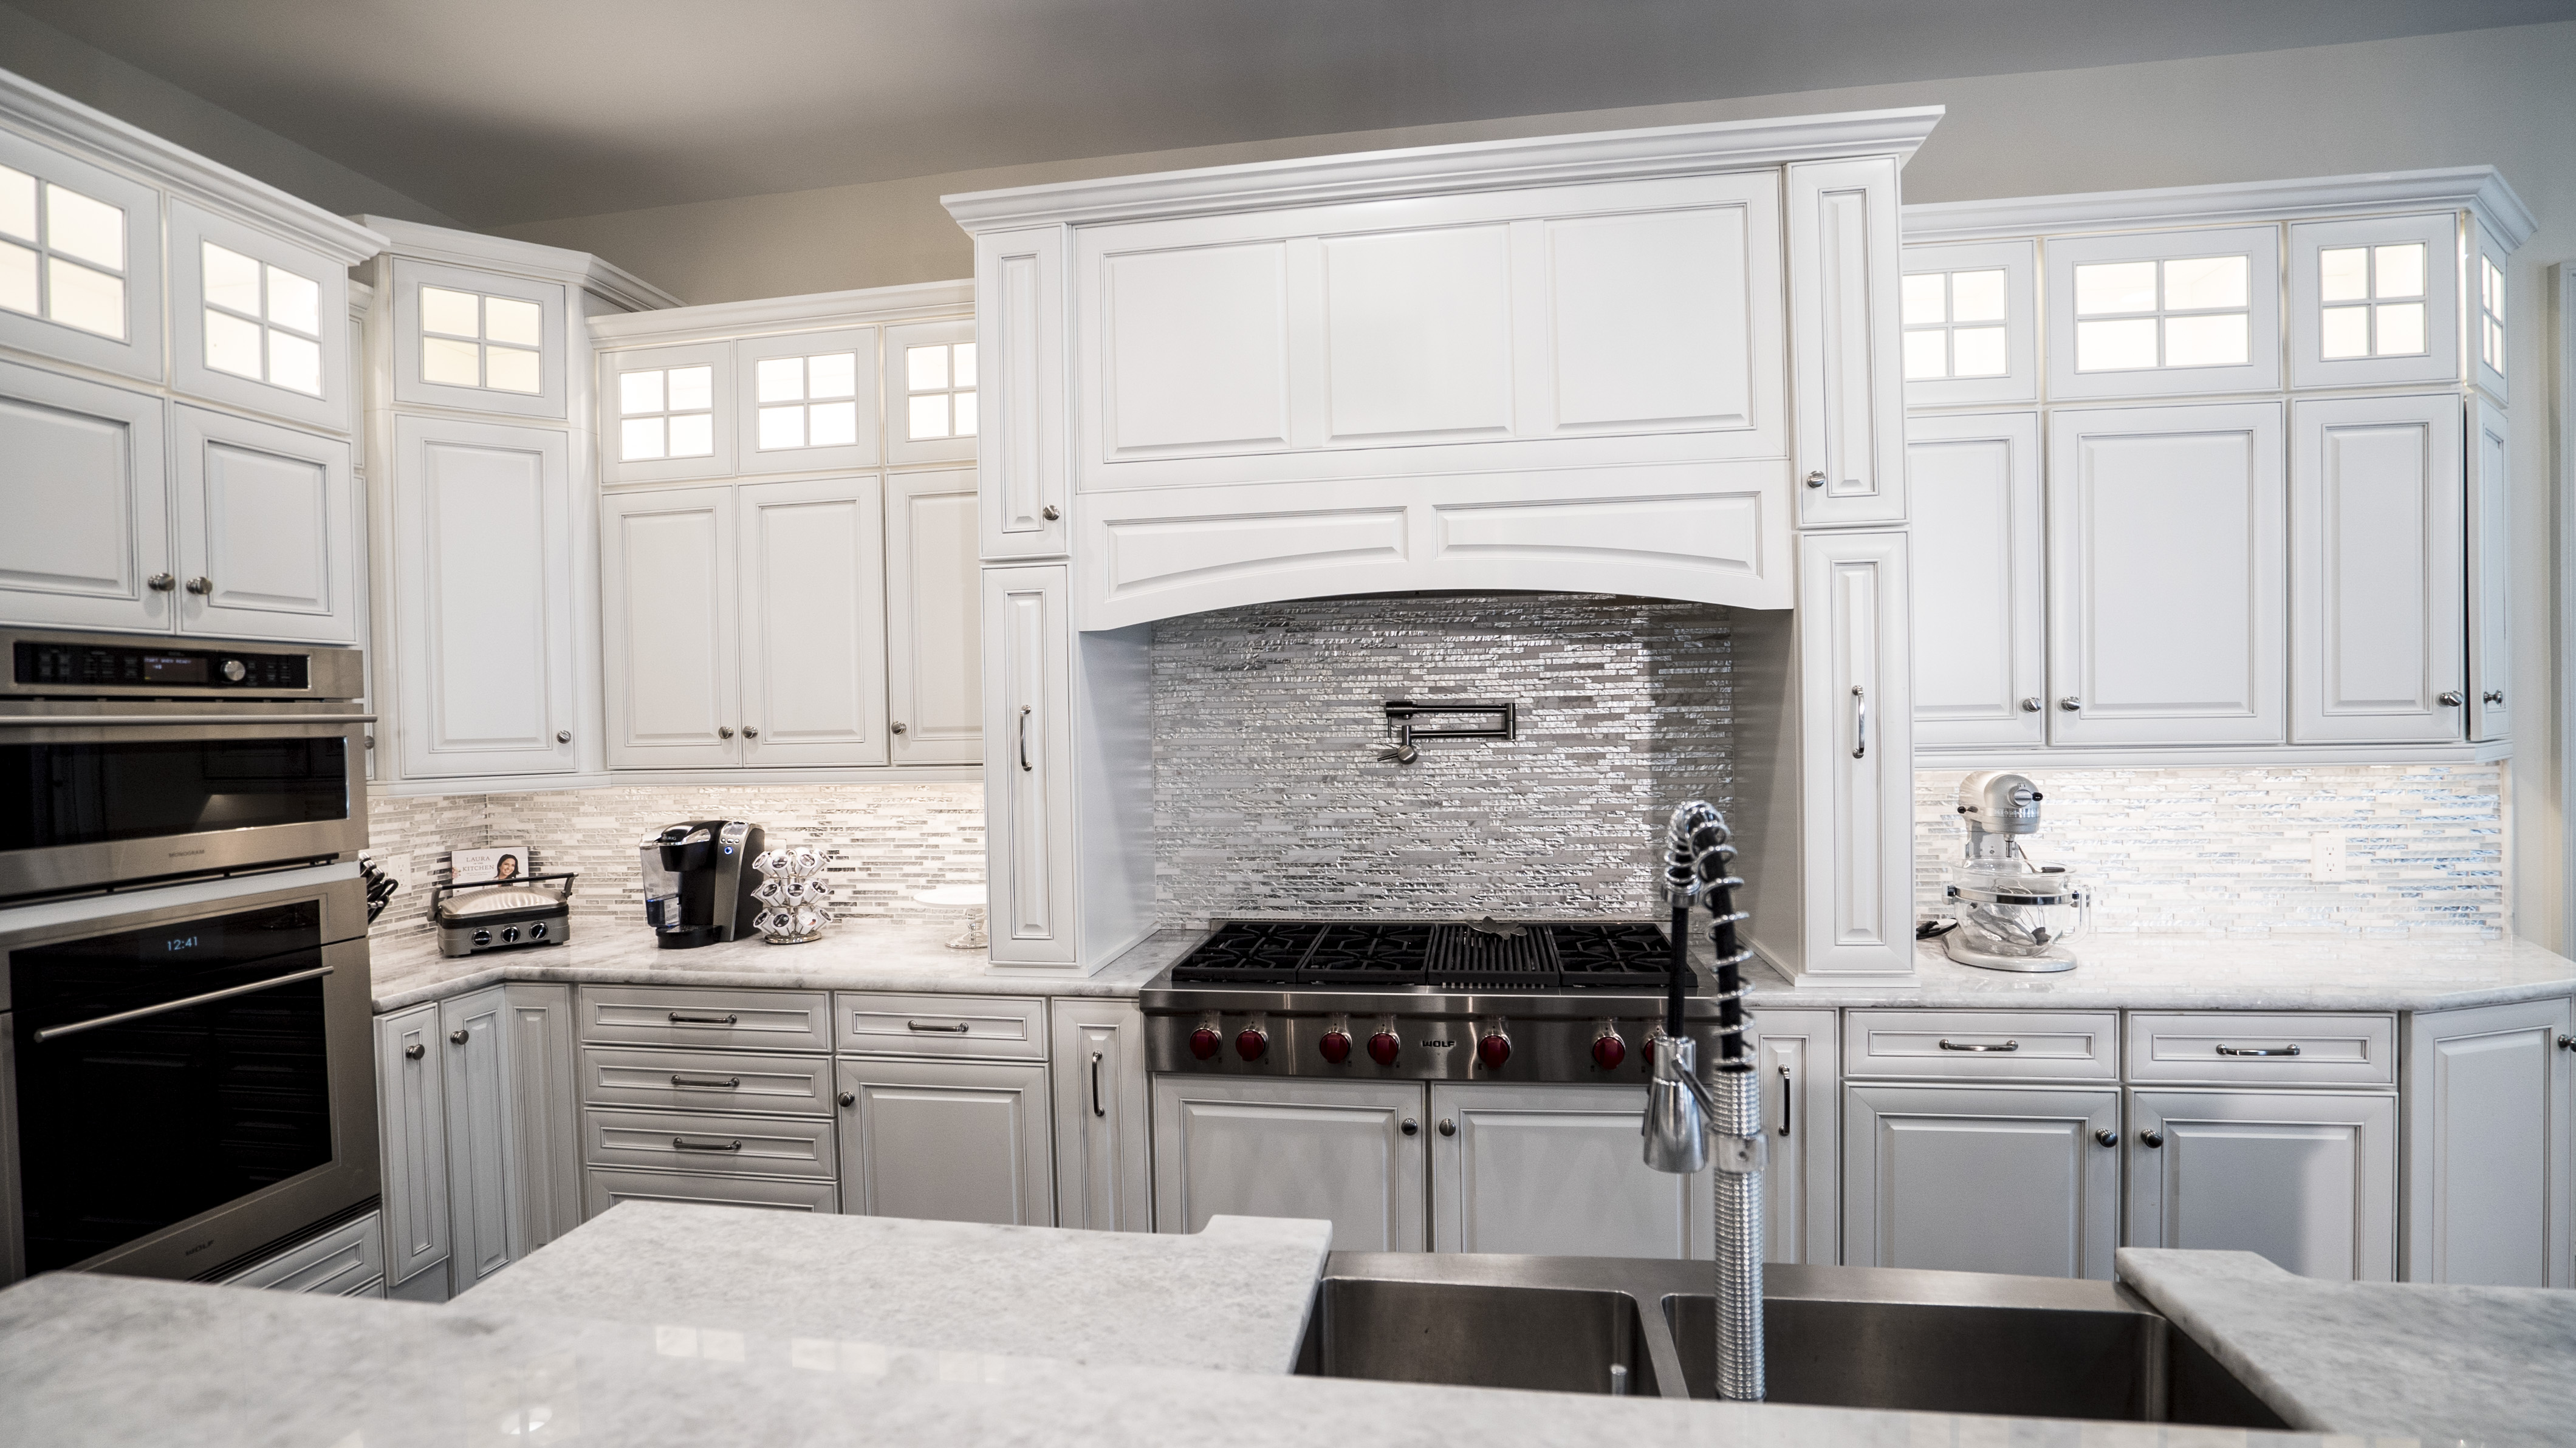 Dorable In The Kitchen With Laura Crest - Kitchen Cabinets   Ideas ...